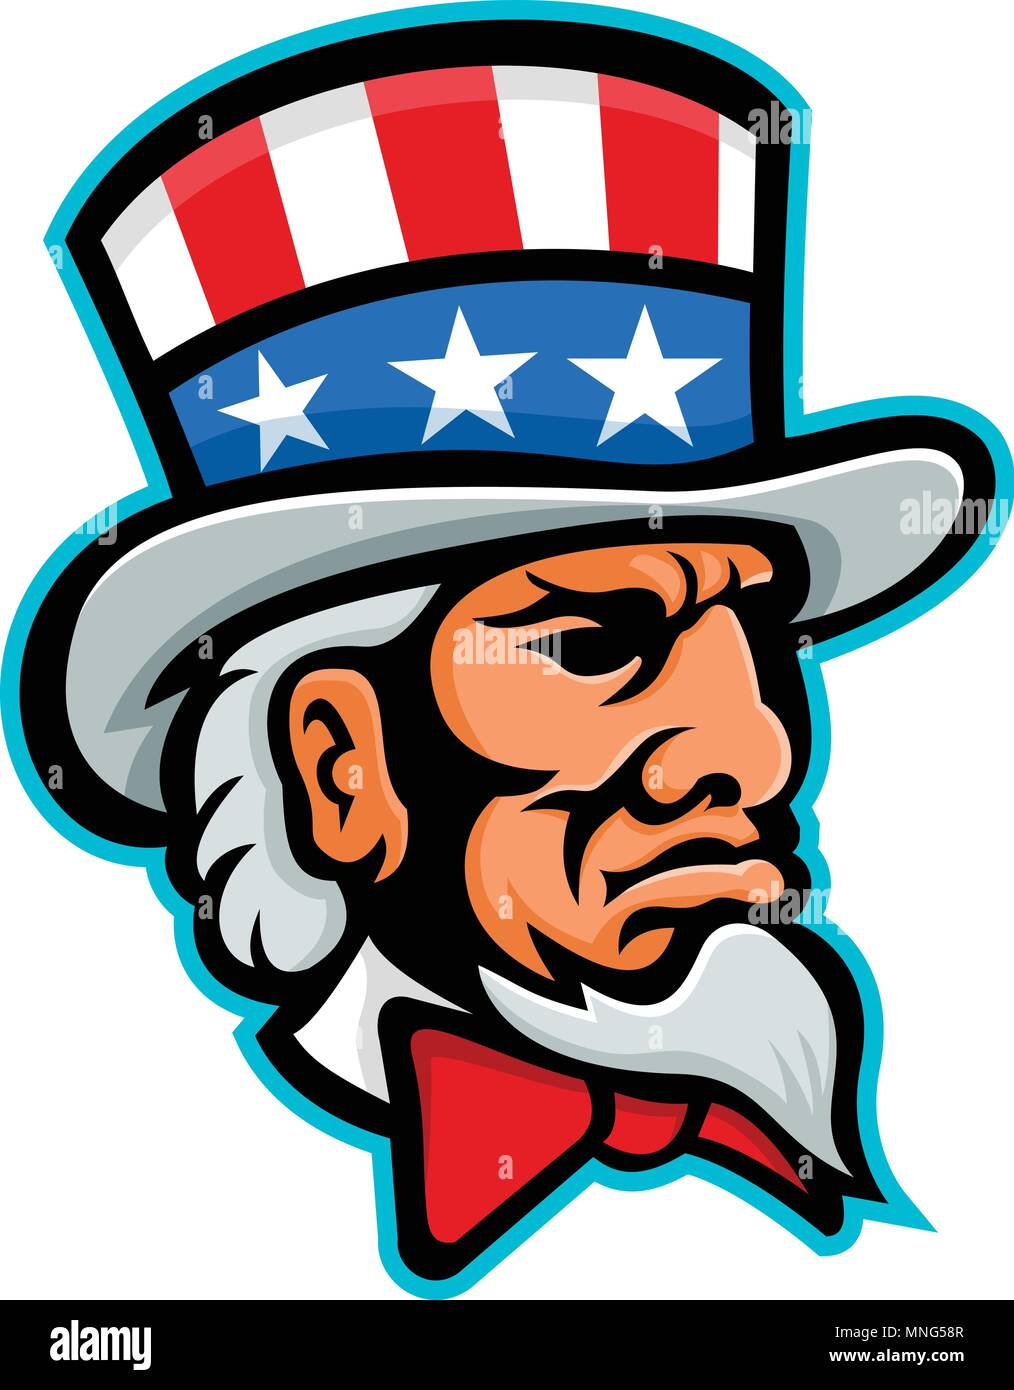 Mascot Icon Illustration Of Head Of Uncle Sam A Popular Symbol Of